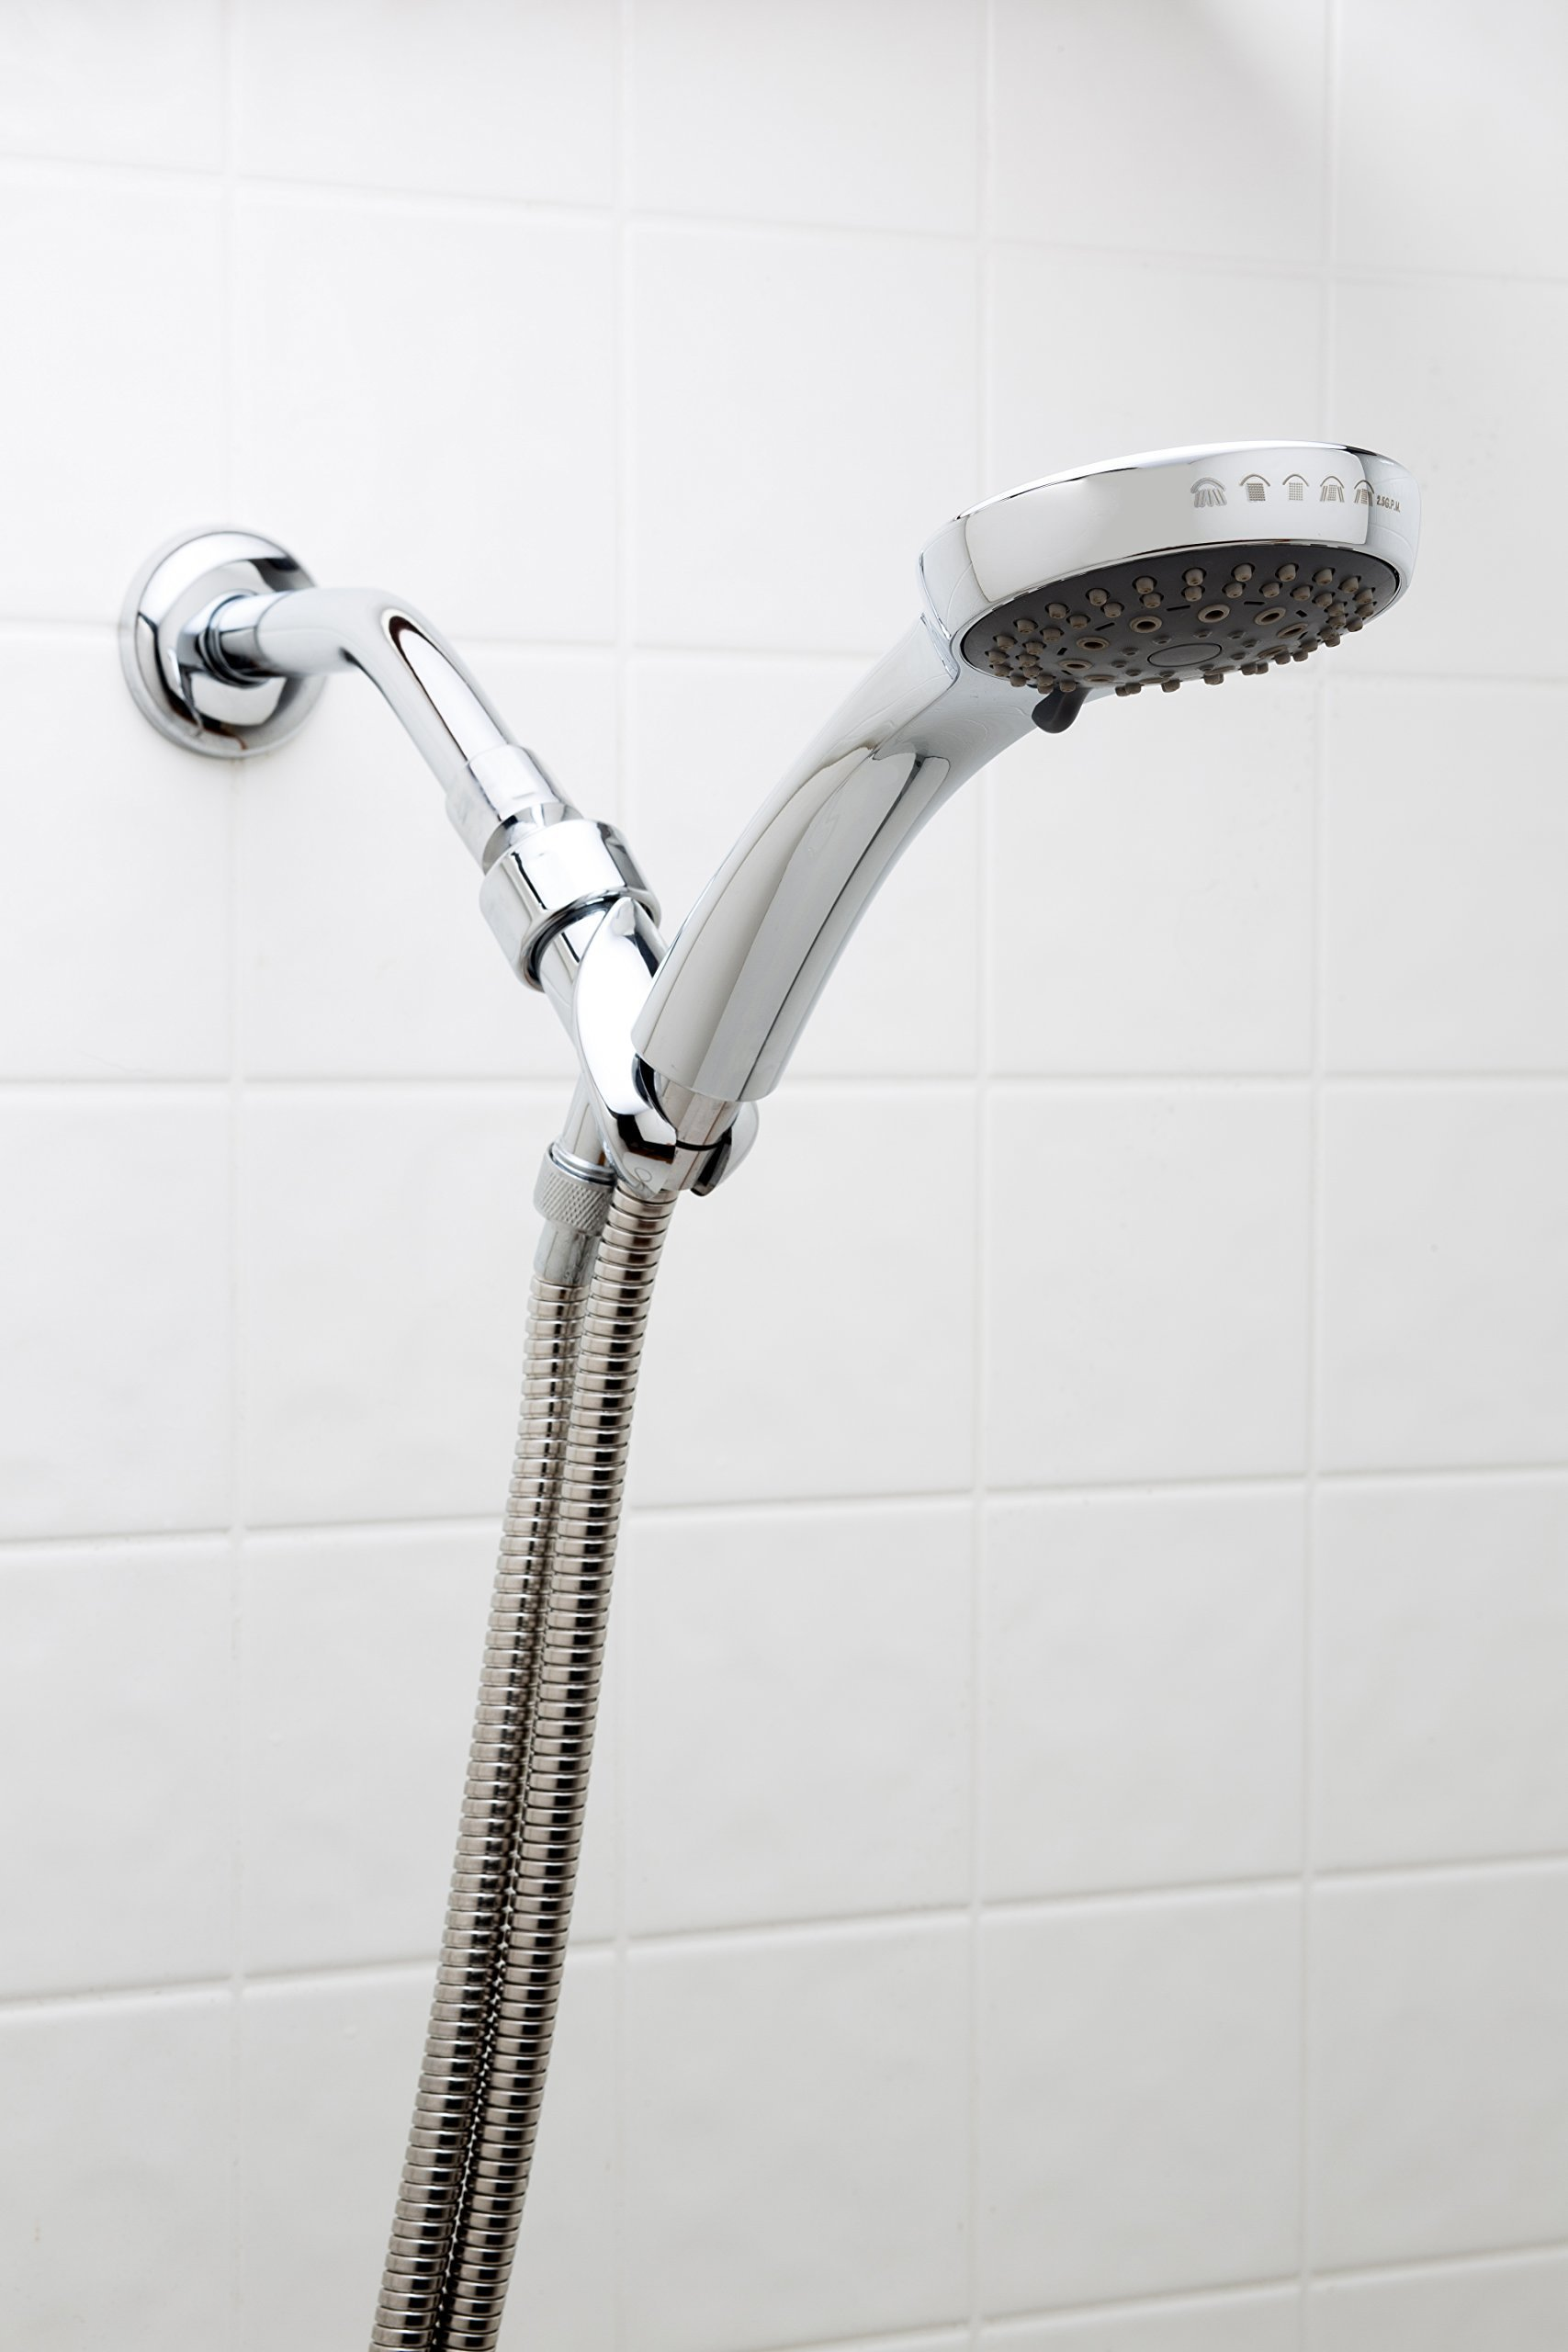 Fire Hydrant Spa Plaza Deluxe Spa Carmel Handheld Shower Head with 78'' Hose